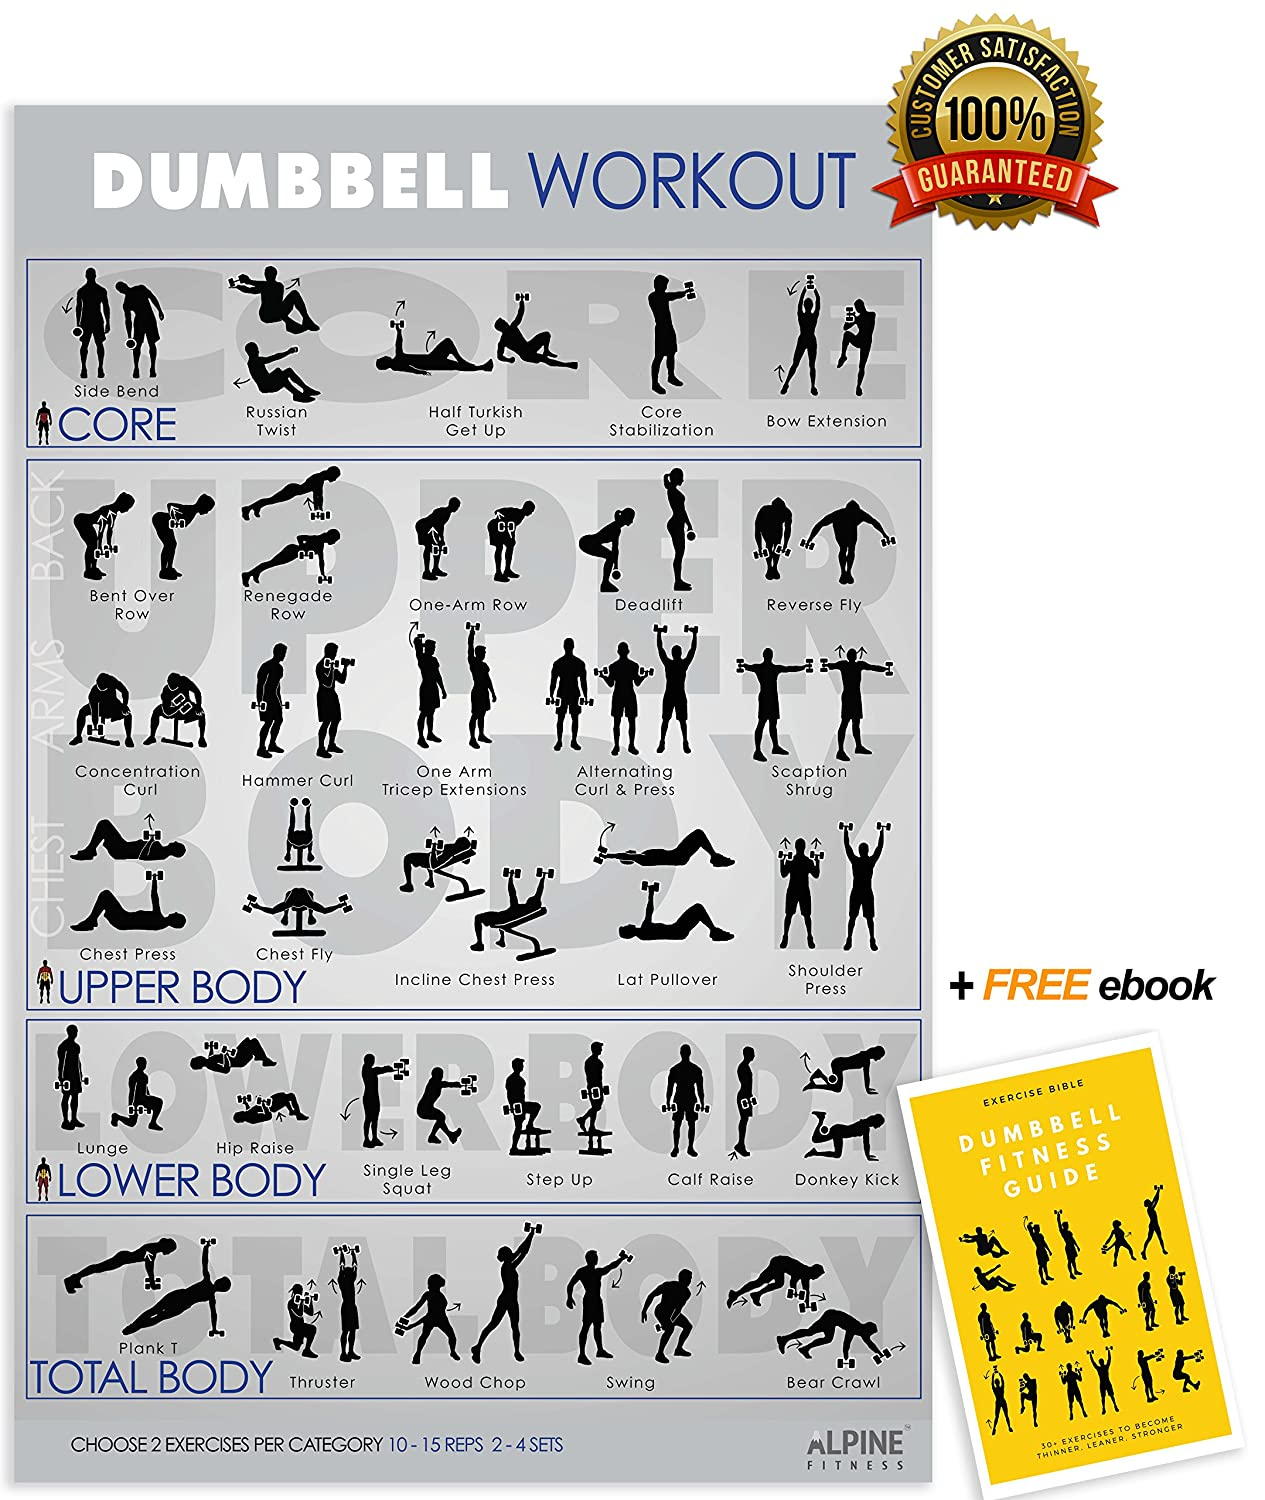 Alpine Fitness Dumbbell Exercise & Fitness Poster | Laminated Gym Planner for a Great Workout - Guide to Build Muscle & Strength